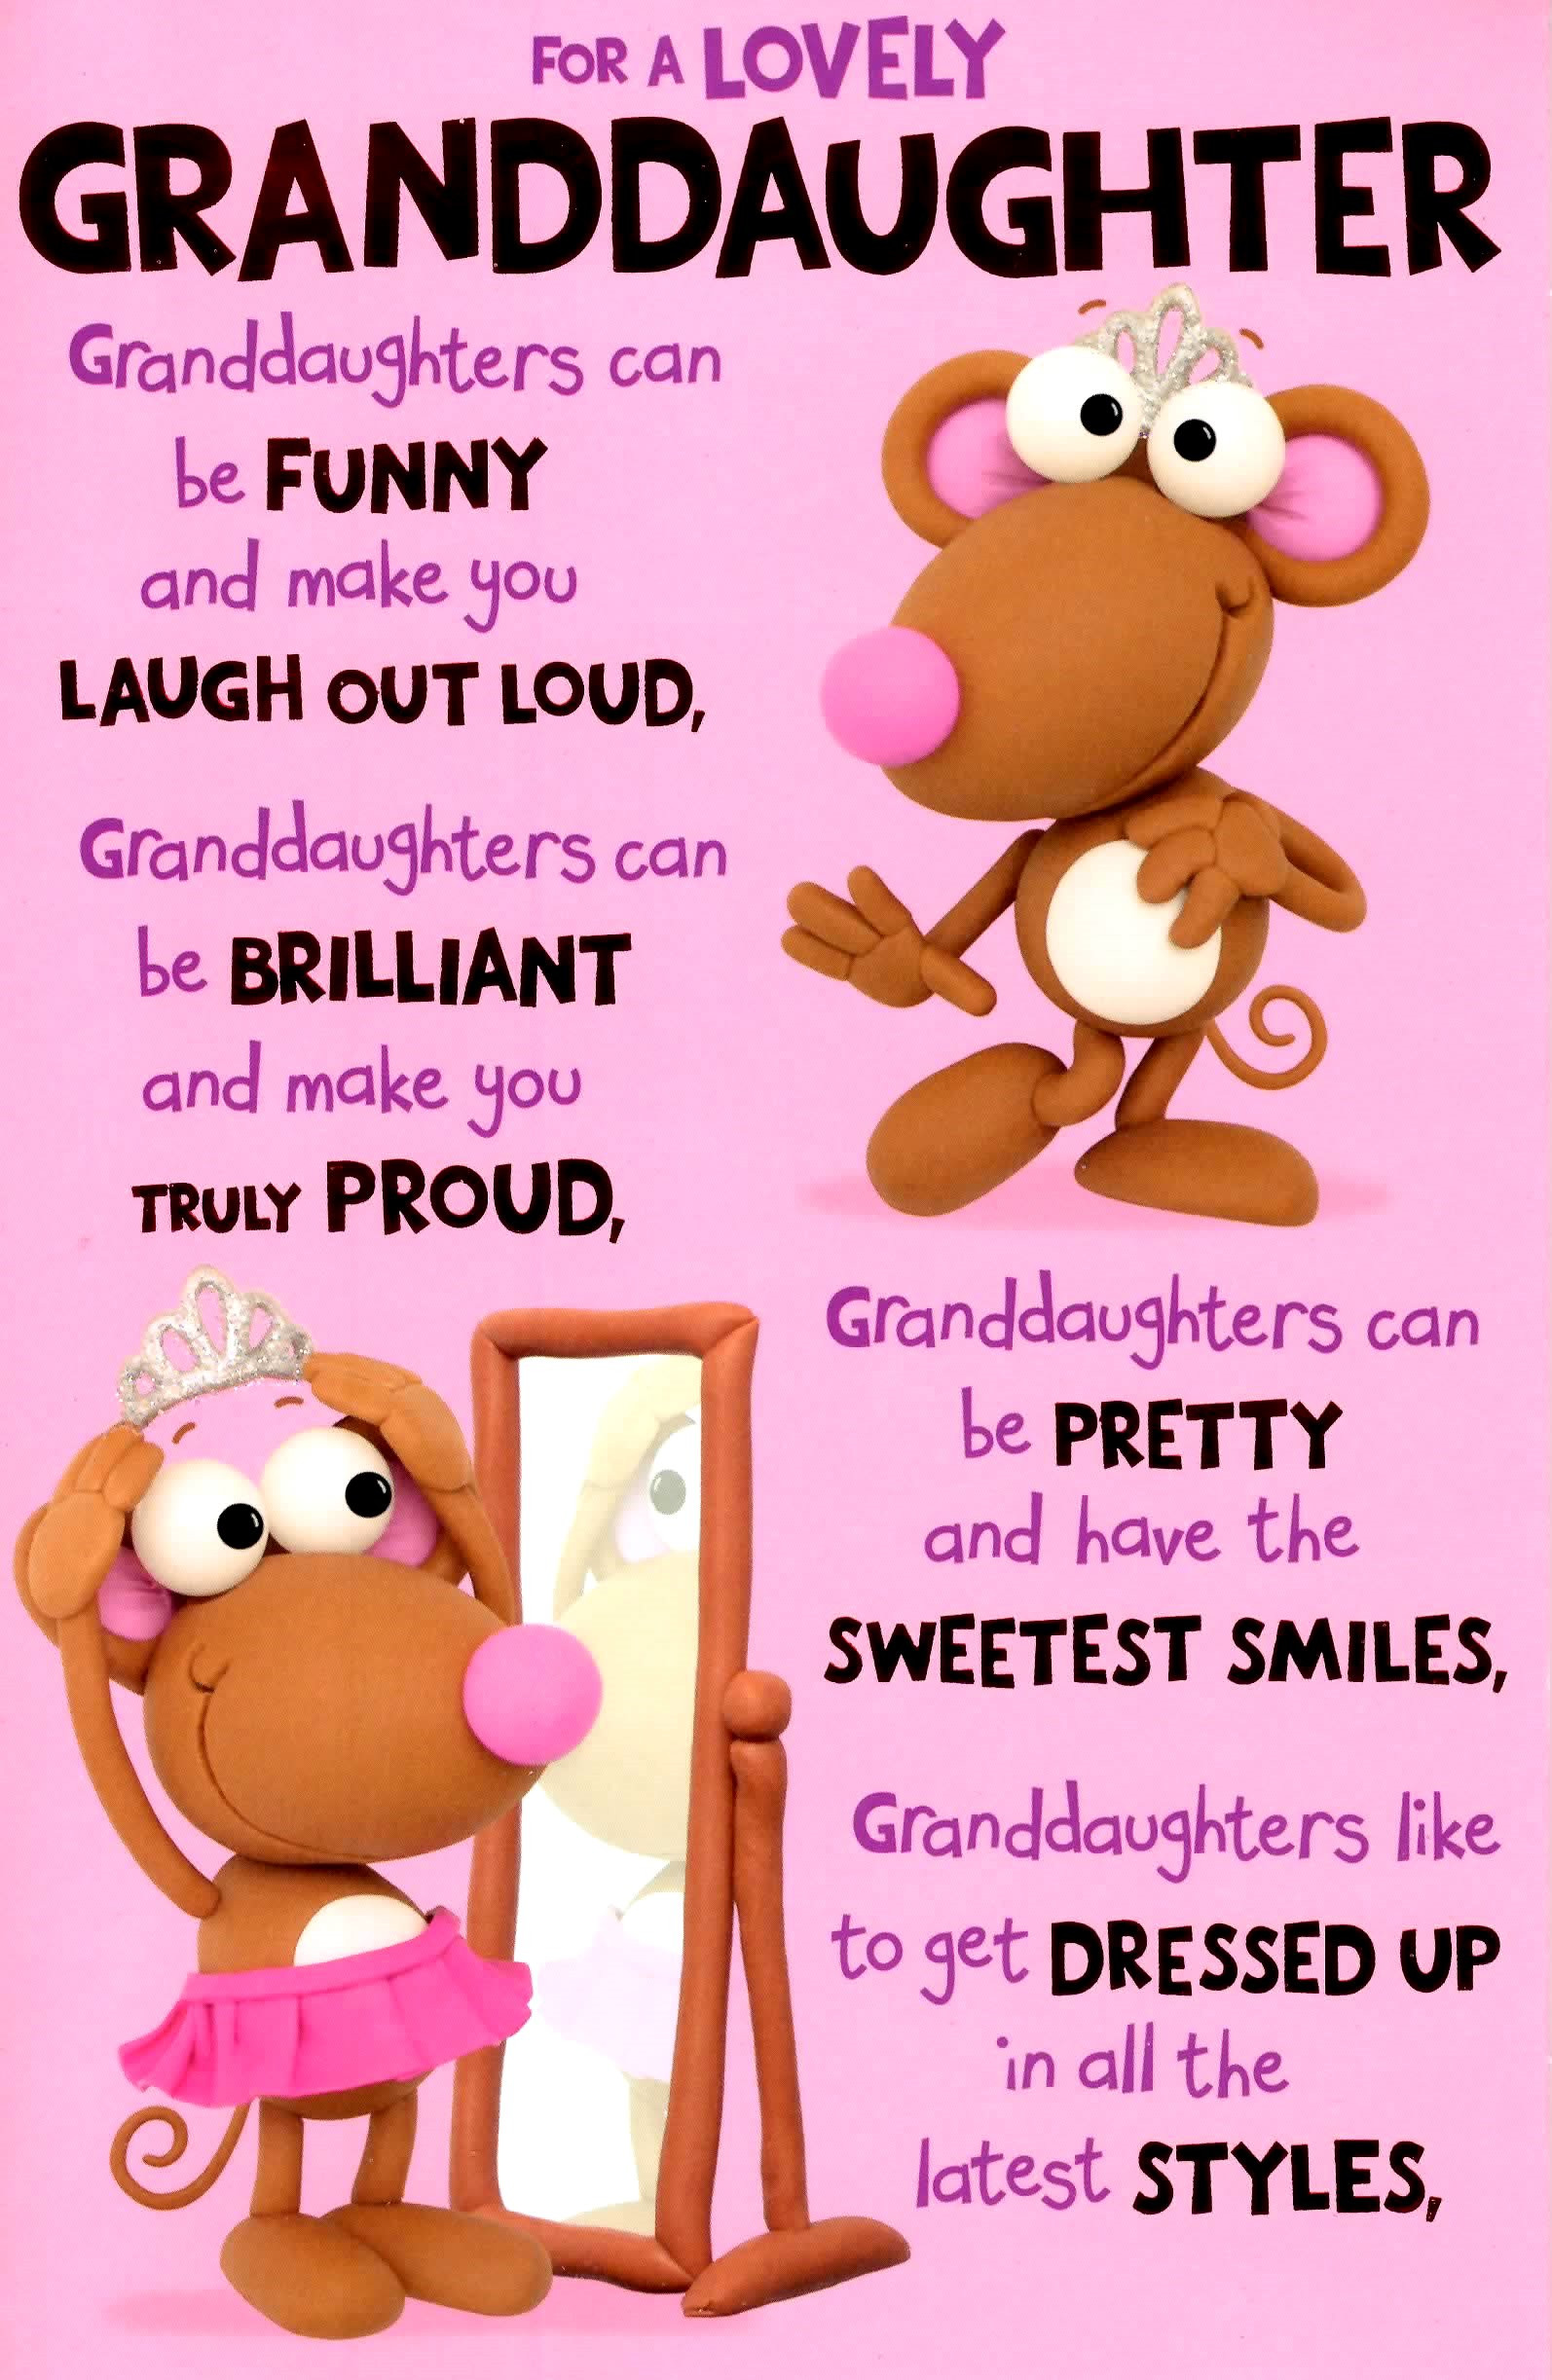 Best ideas about Granddaughter Birthday Wishes . Save or Pin Cute Wonderful Granddaughter Birthday Greeting Card Now.